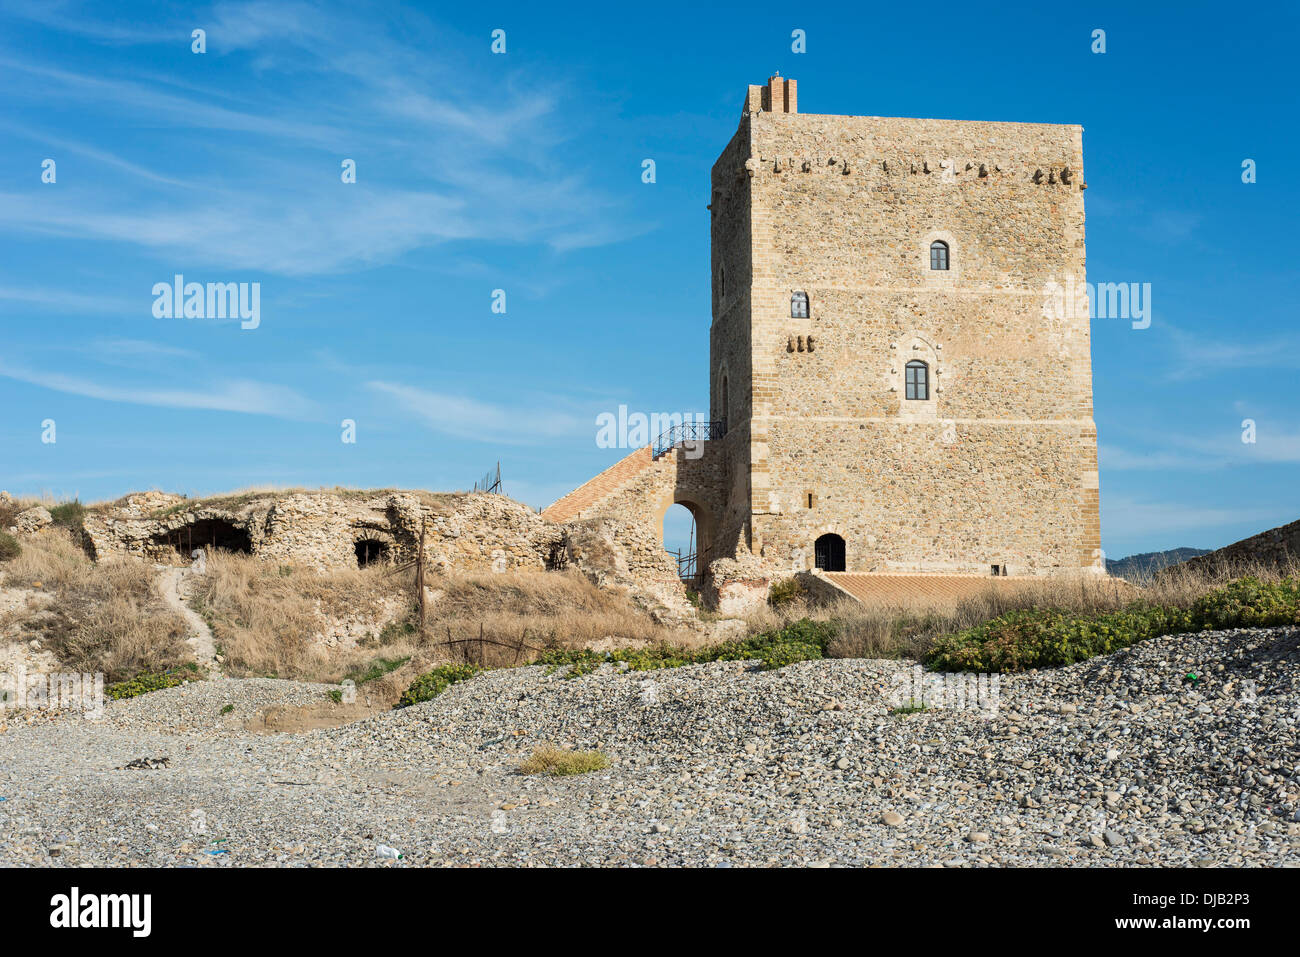 Roccella tower from the 14th Century, Campofelice di Roccella, Sicily, Italy - Stock Image